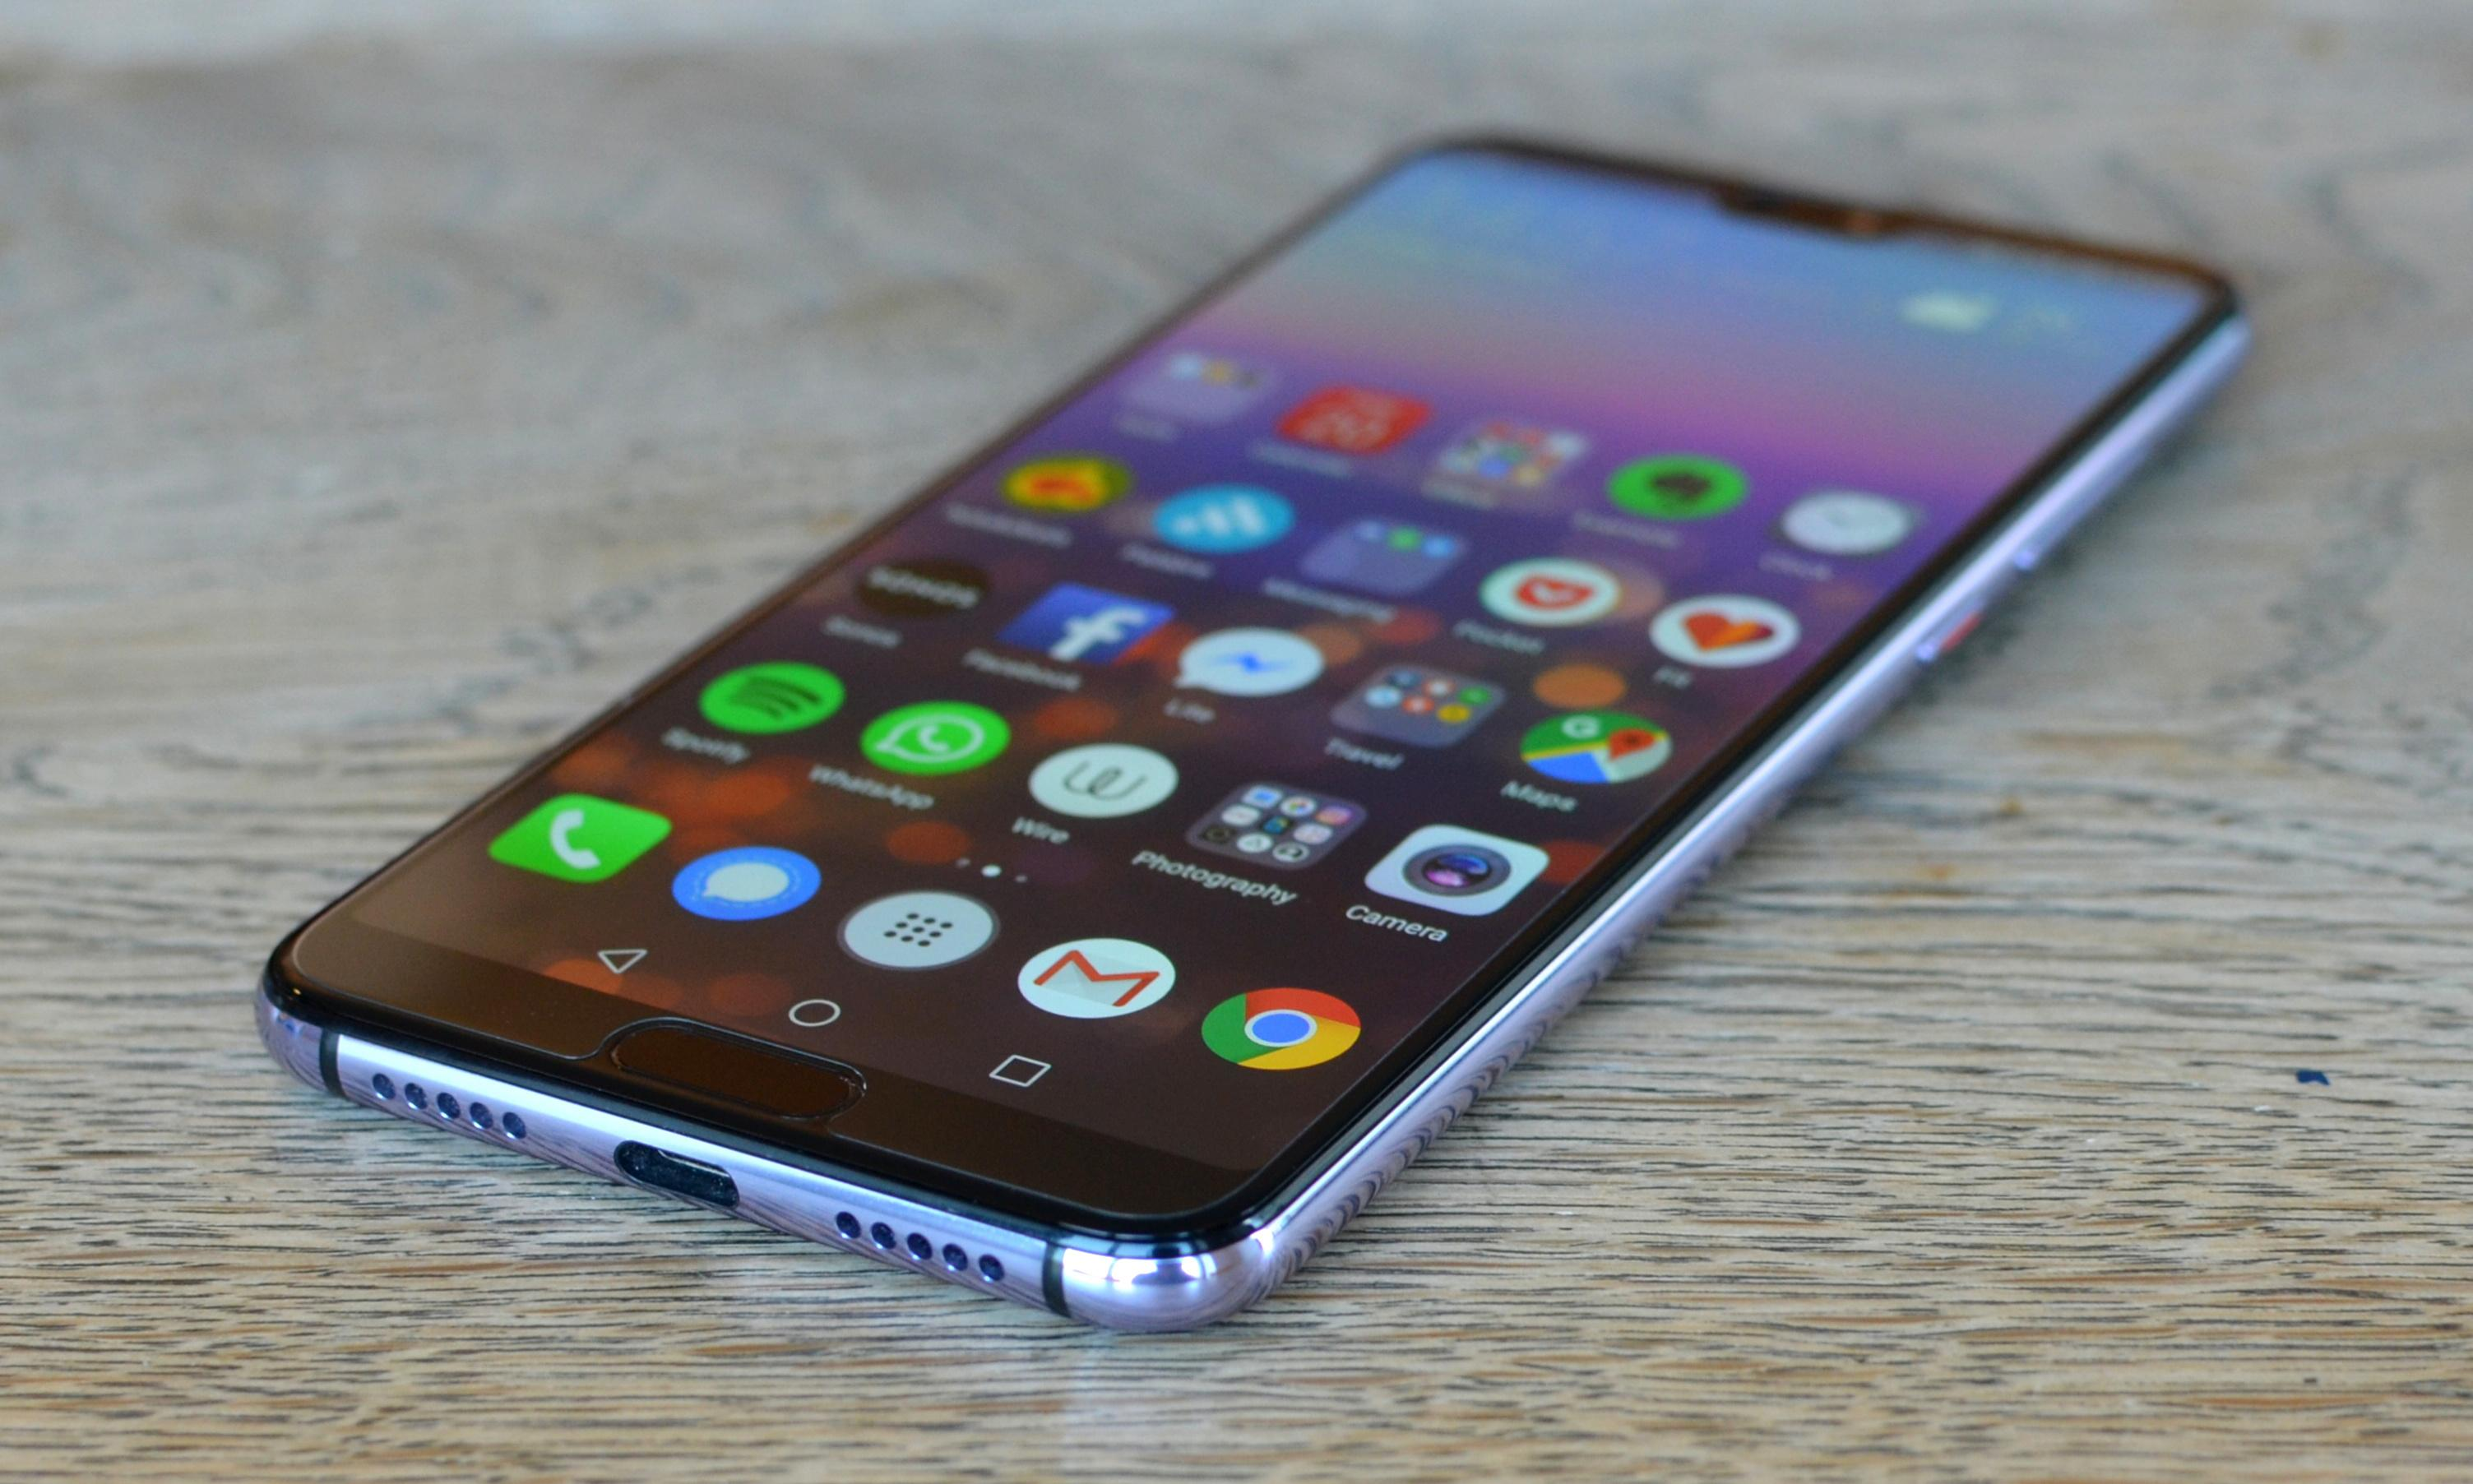 Huawei blockade: do I need to stop using my Android phone?